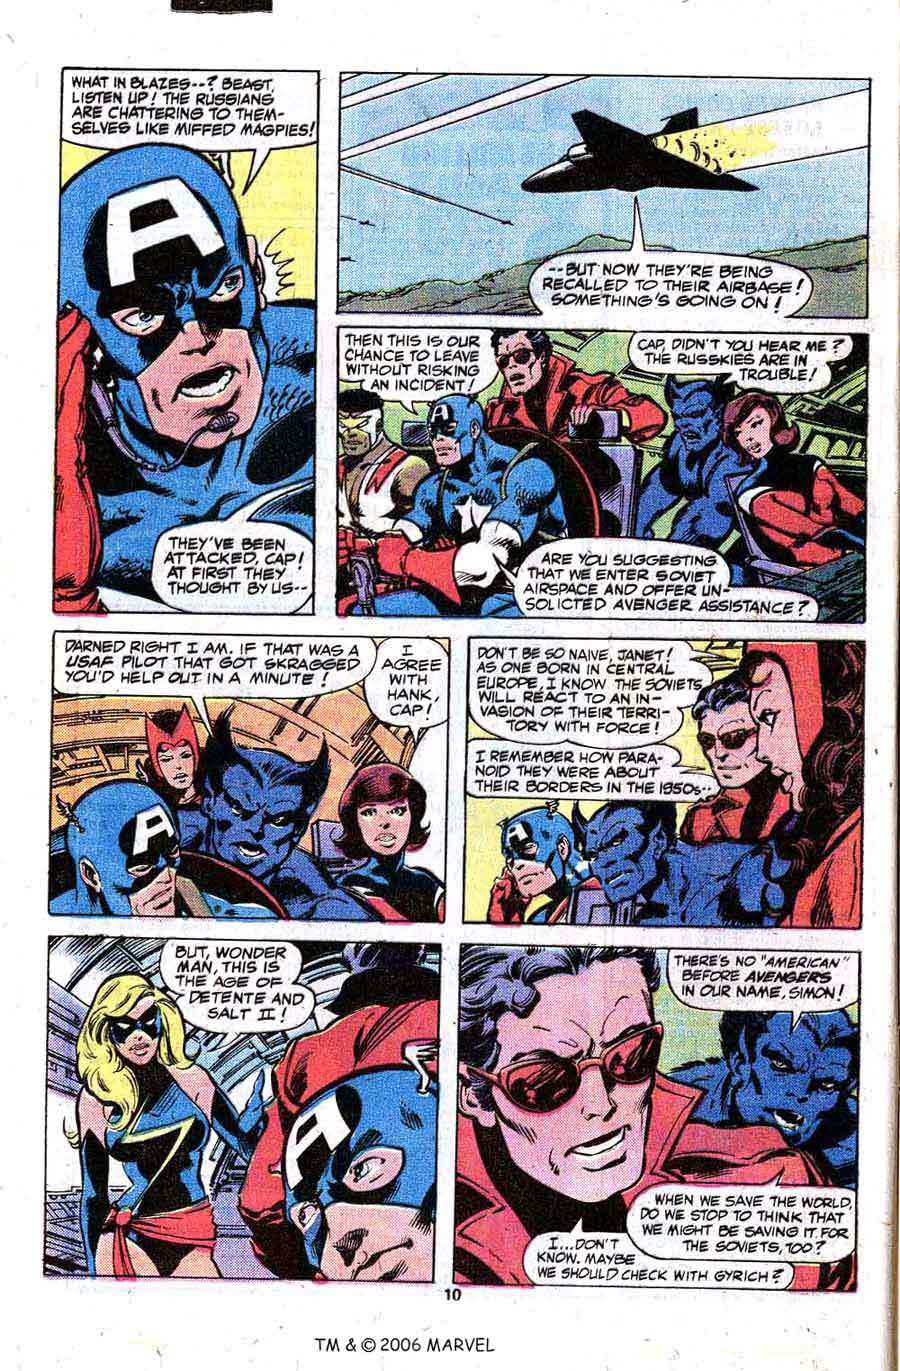 Avengers #188 marvel 1970s bronze age comic book page art by John Byrne